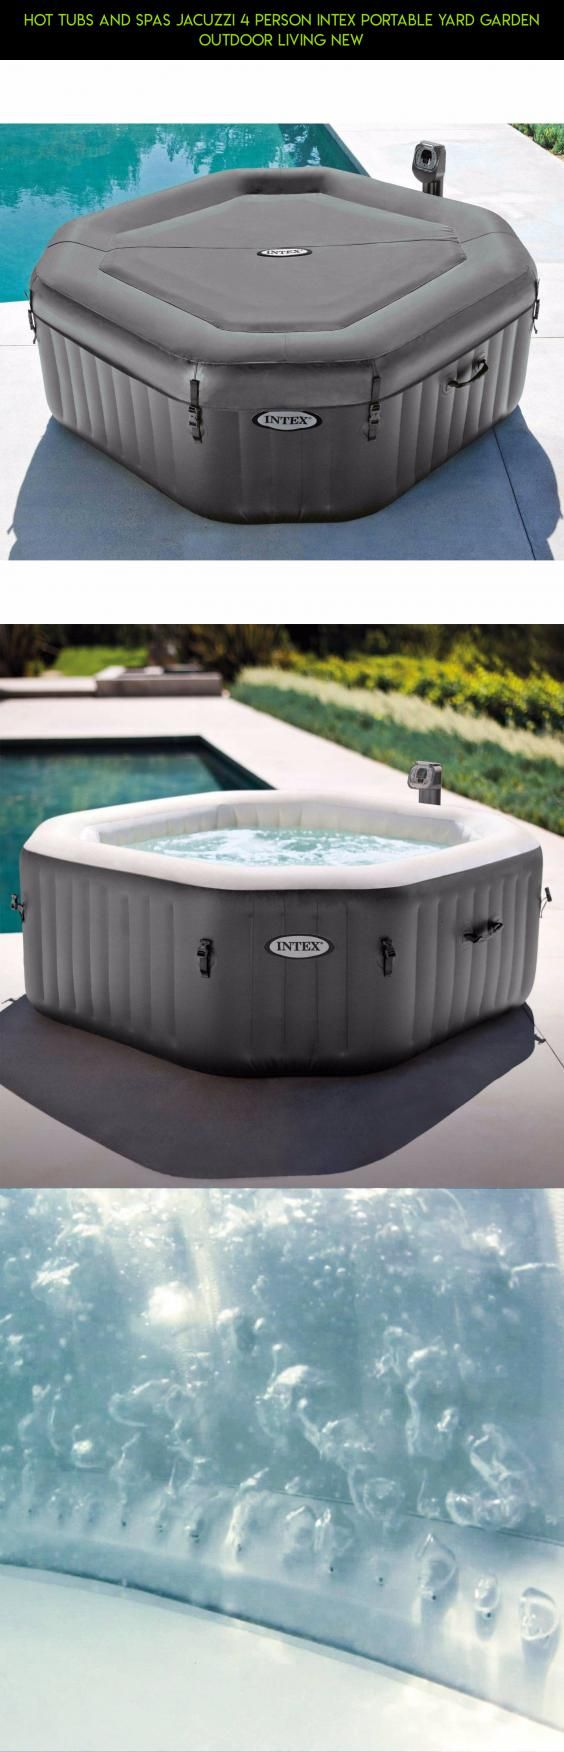 hot tubs and spas jacuzzi person intex portable yard garden outdoor living new products